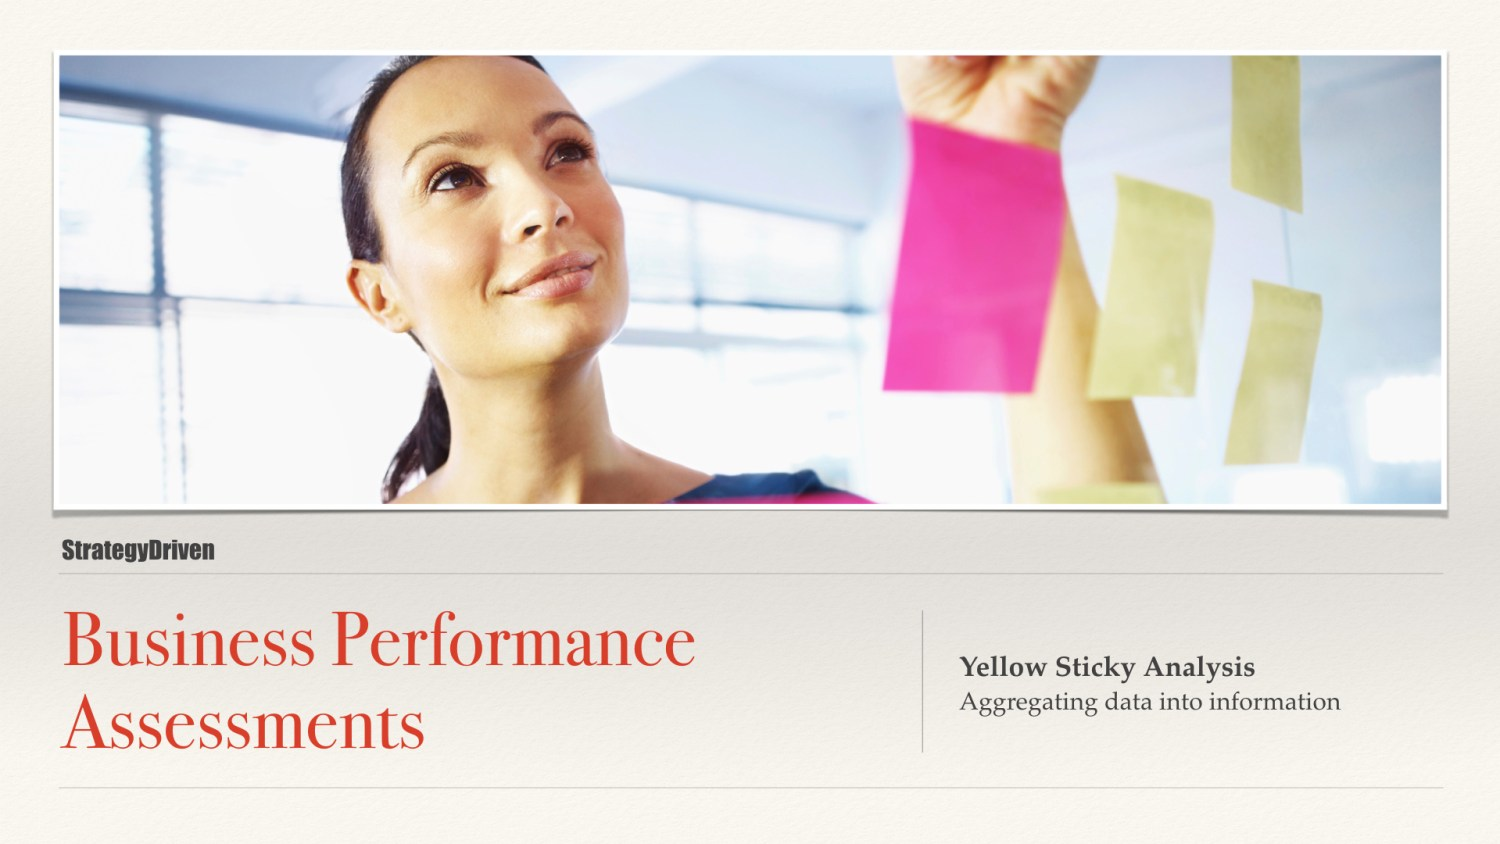 Yellow Sticky Analysis | Maximizing the Value of Business Performance Assessments Training Program | Digital Products Platform | Nathan Ives